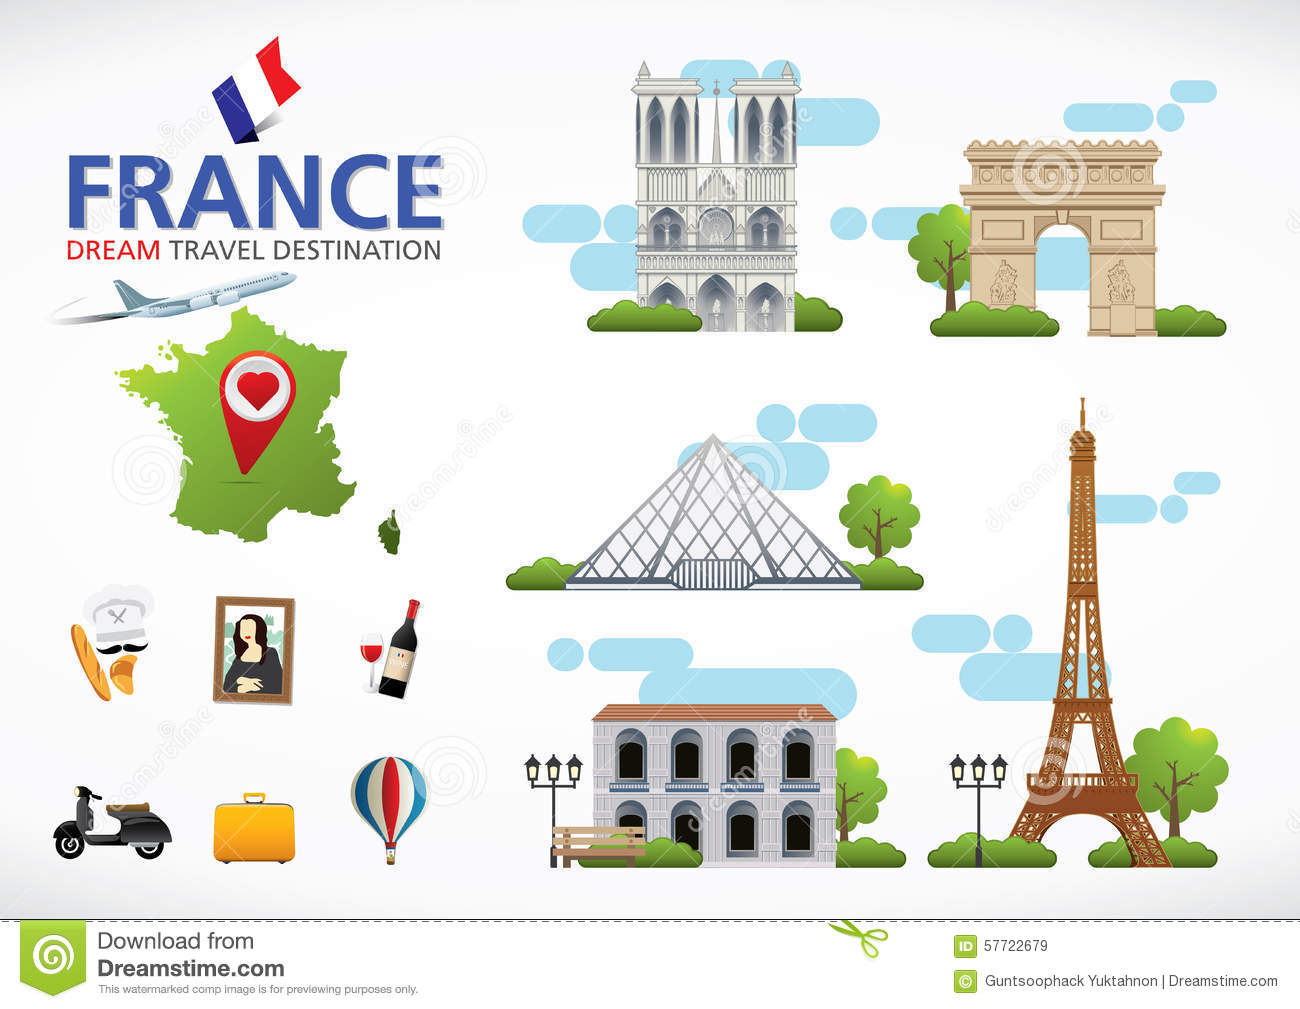 France travel dreams destination france travel symbols symbols france travel dreams destination france travel symbols symbols of france landmark biocorpaavc